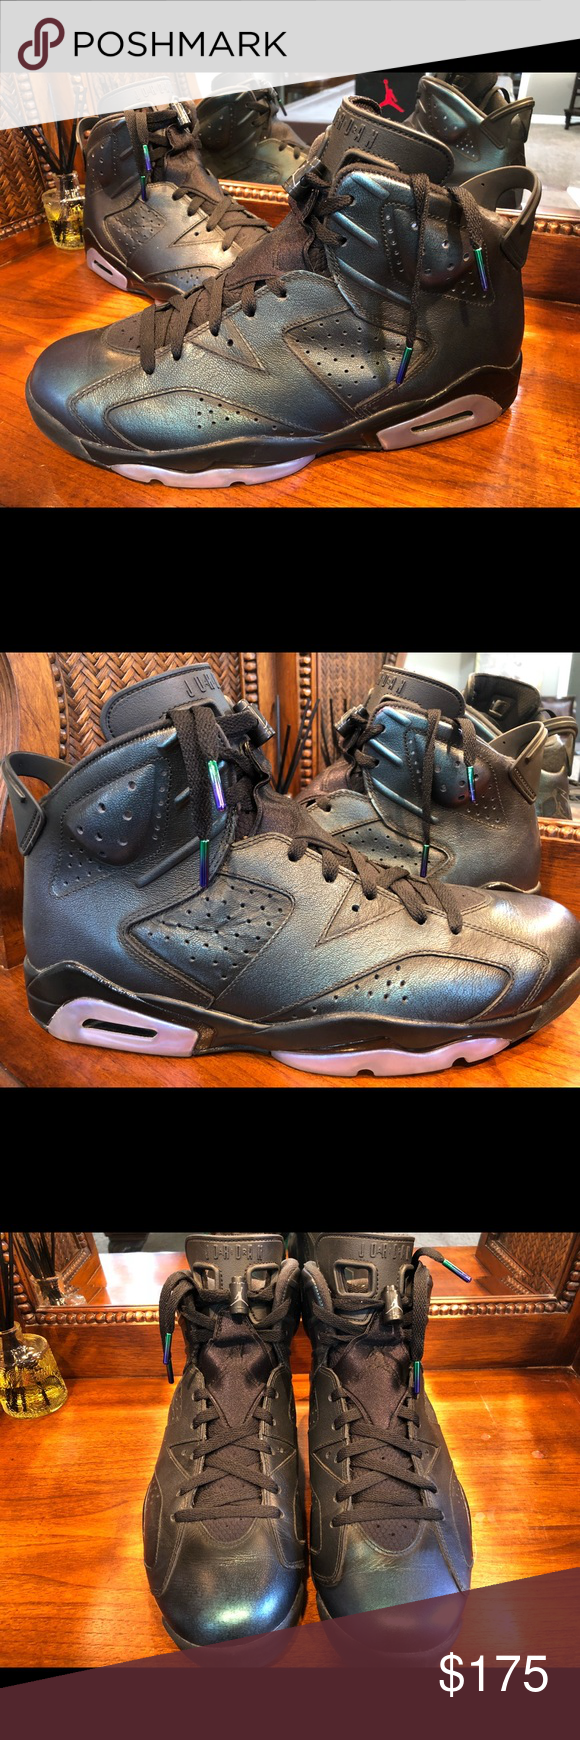 """b130ca34f8f9 Air Jordan 6 Retro """"All Star"""" Premium 🔥 🔥 This Air Jordan 6 features an iridescent  leather upper that changes colors and also rubs off similar to the """" ..."""